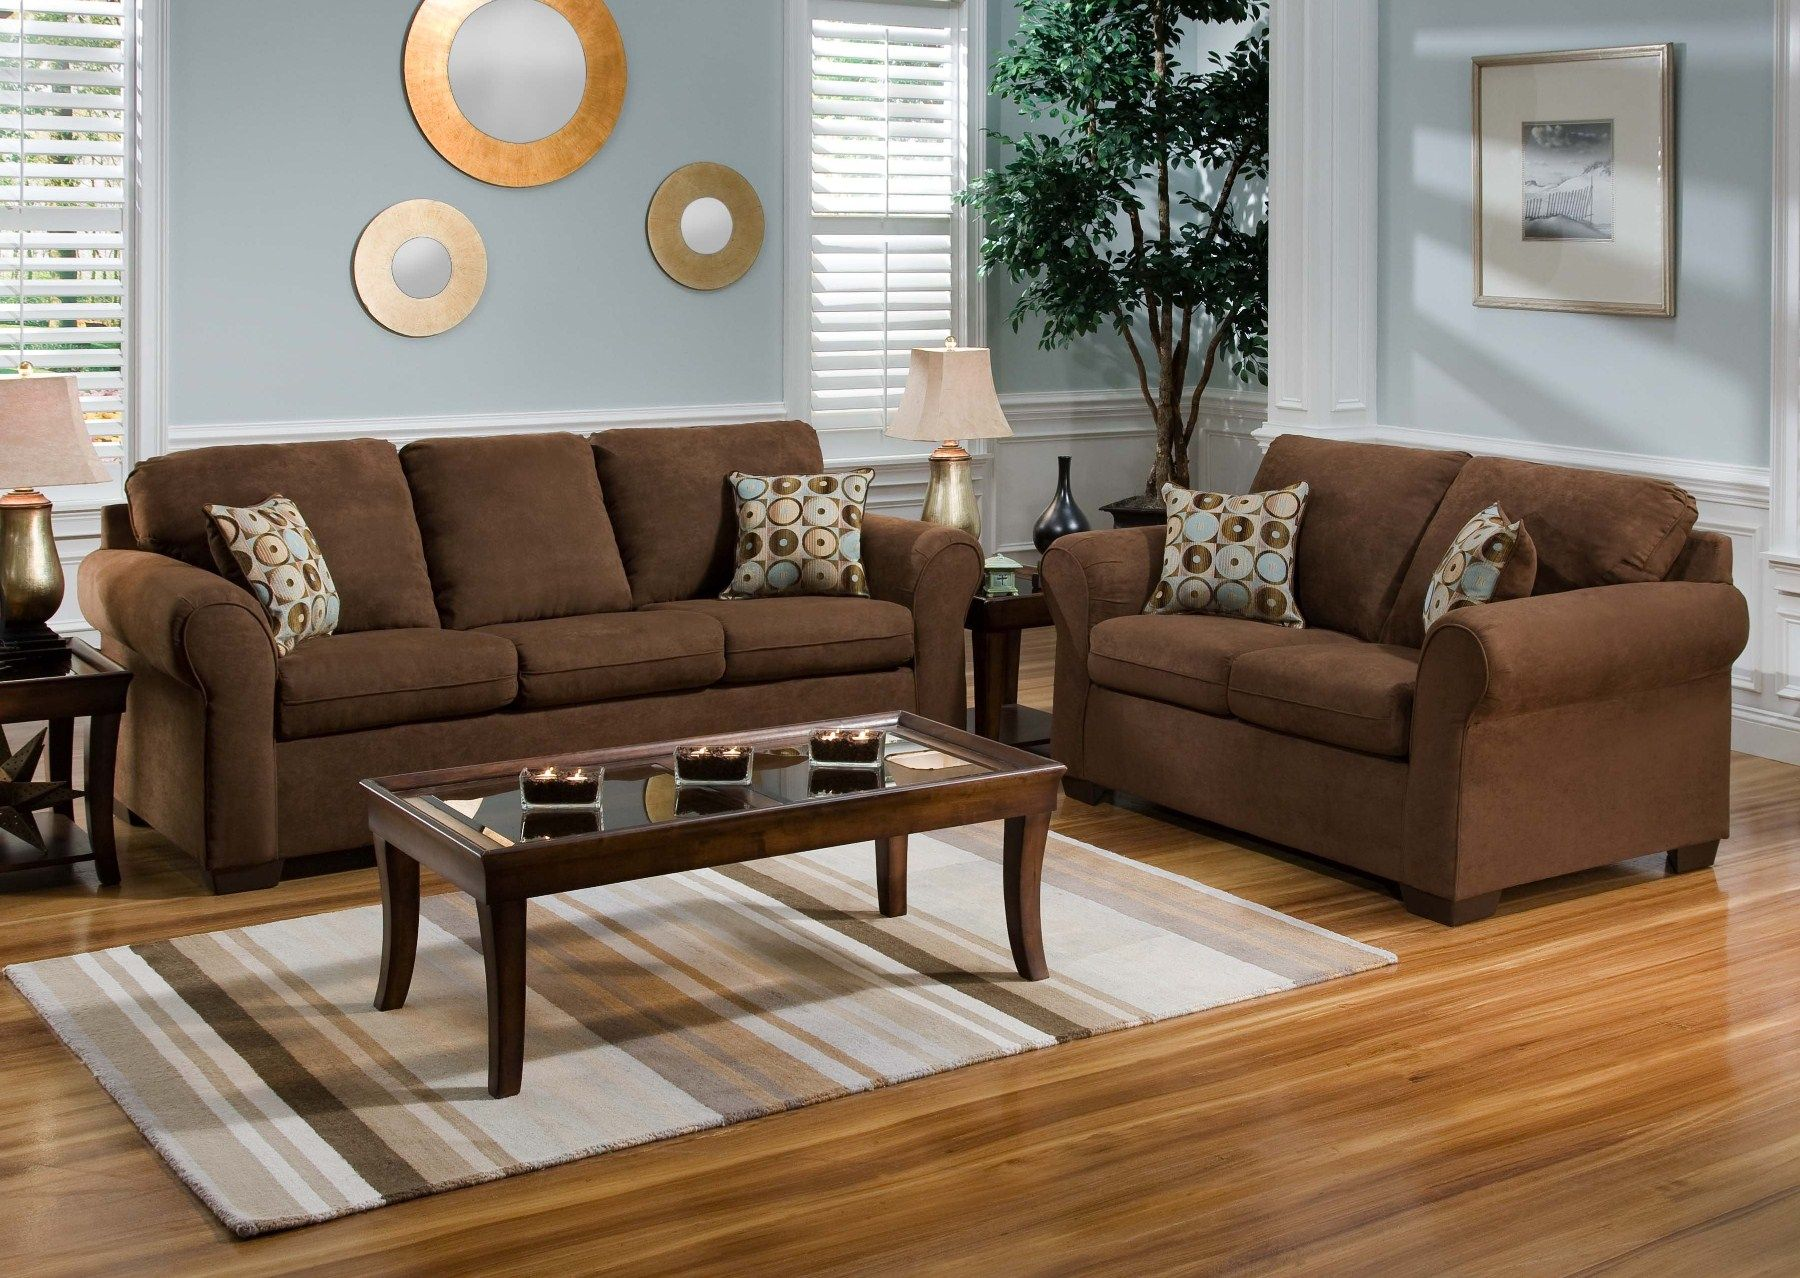 Living Room Paint Ideas For Brown Furniture best 25+ chocolate brown couch ideas that you will like on